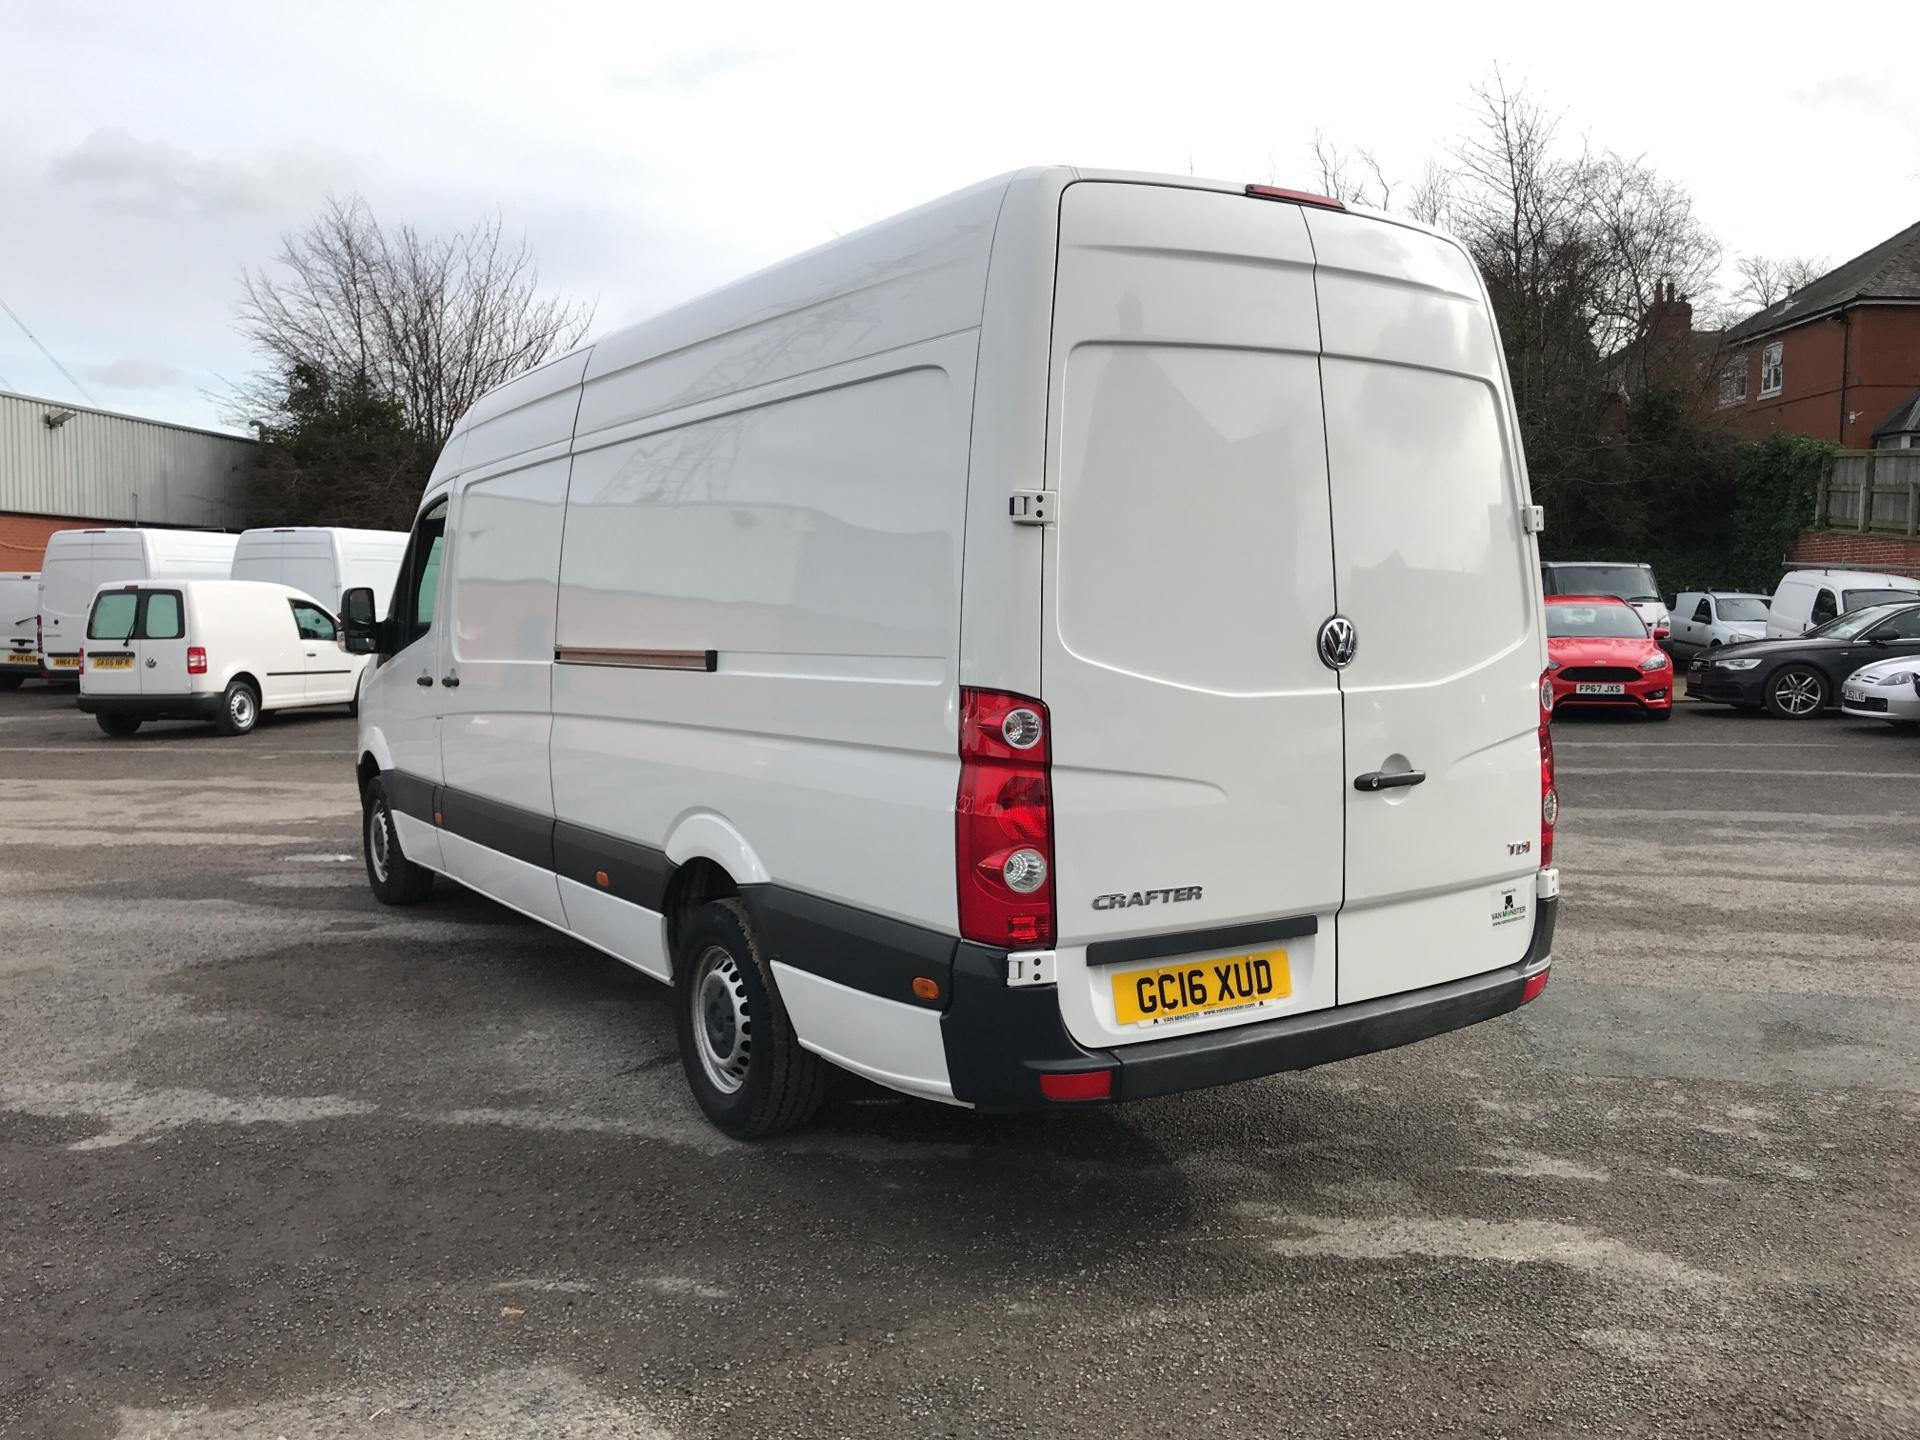 2016 Volkswagen Crafter  CR35 LWB 2.0 TDI 136PS HIGH ROOF EURO 5 (GC16XUD) Image 5